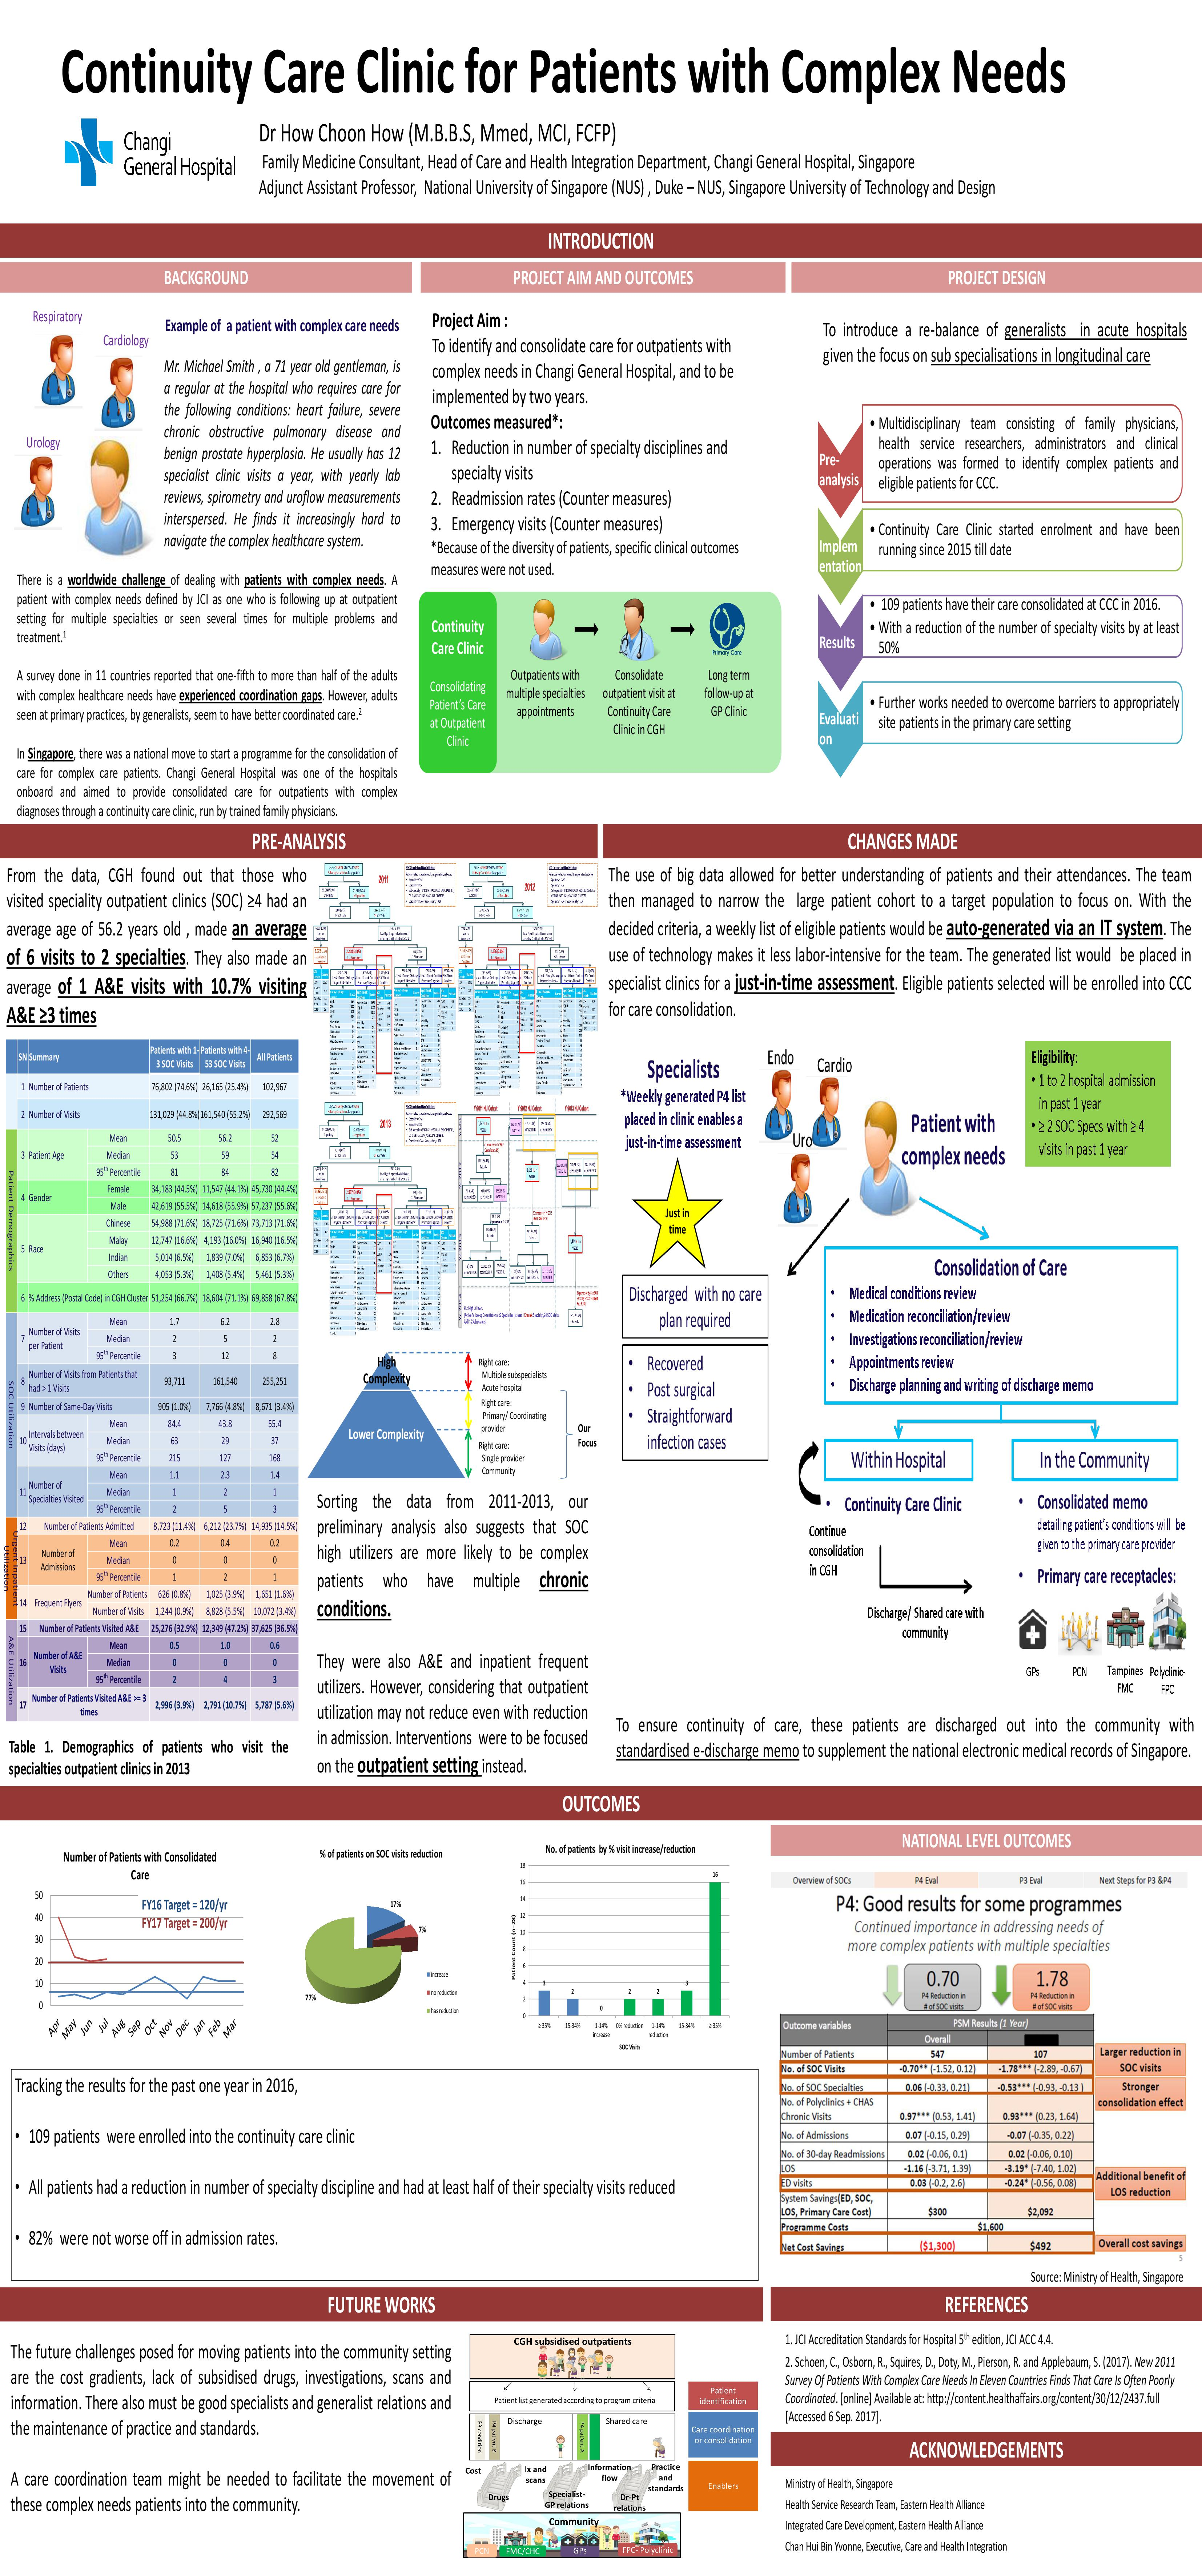 IHI Poster submission